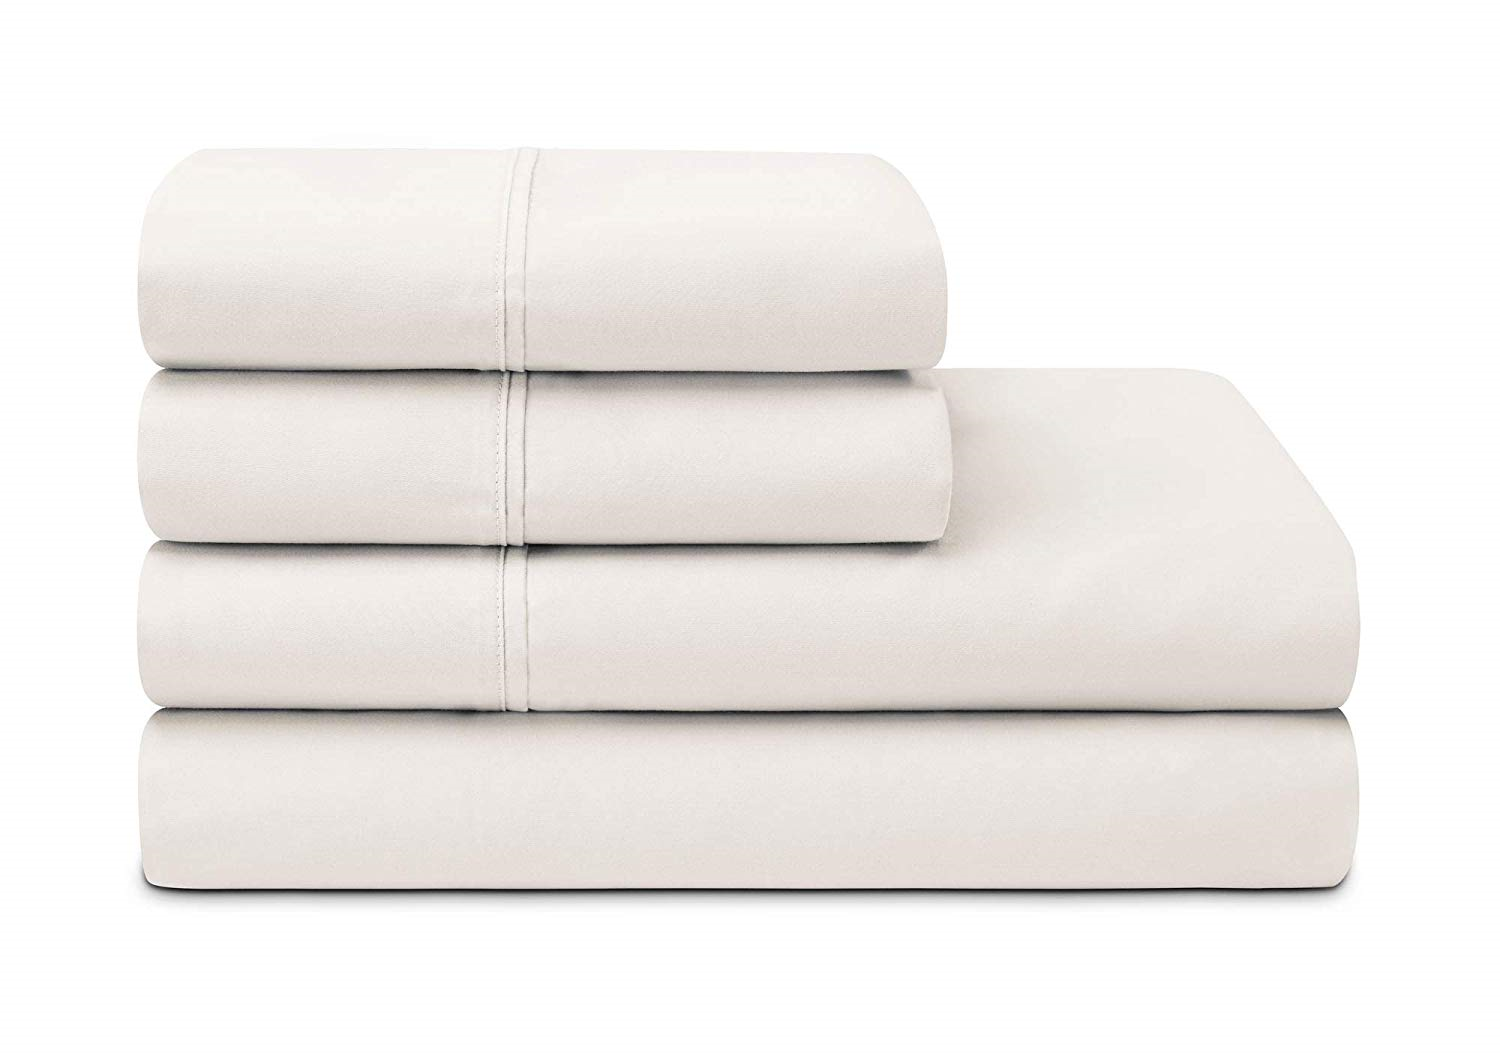 Sleepletics Celliant Performance Sheet Set with 2 Pillowcases Chalk, Queen 15''